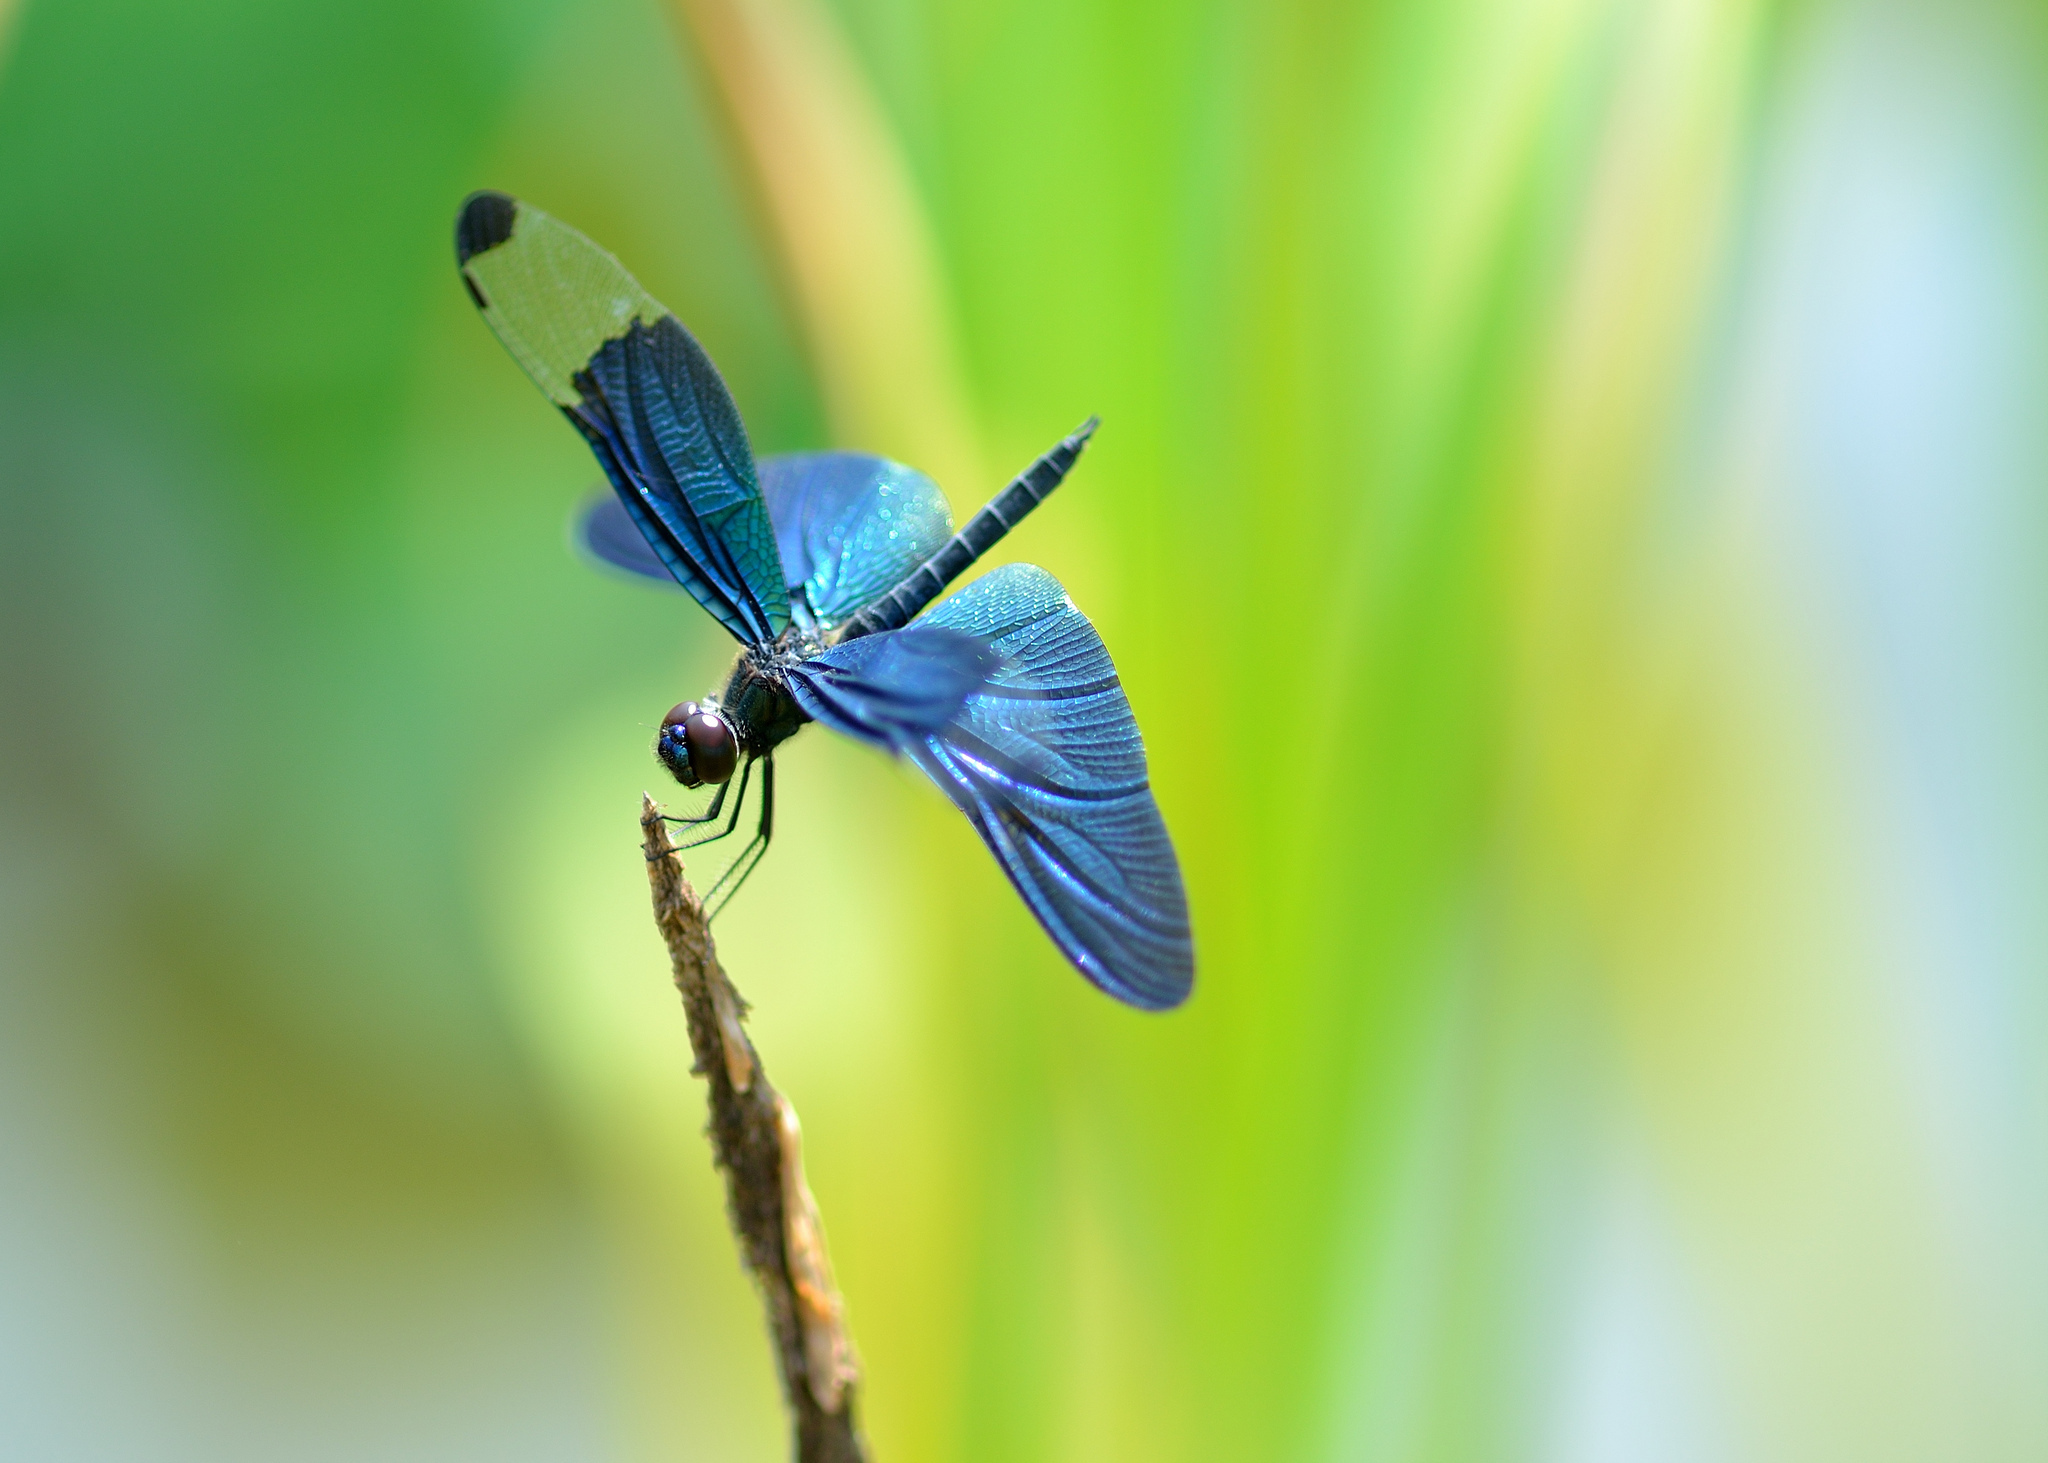 Dragonfly HD Wallpapers  Backgrounds  Wallpaper  2048x1463